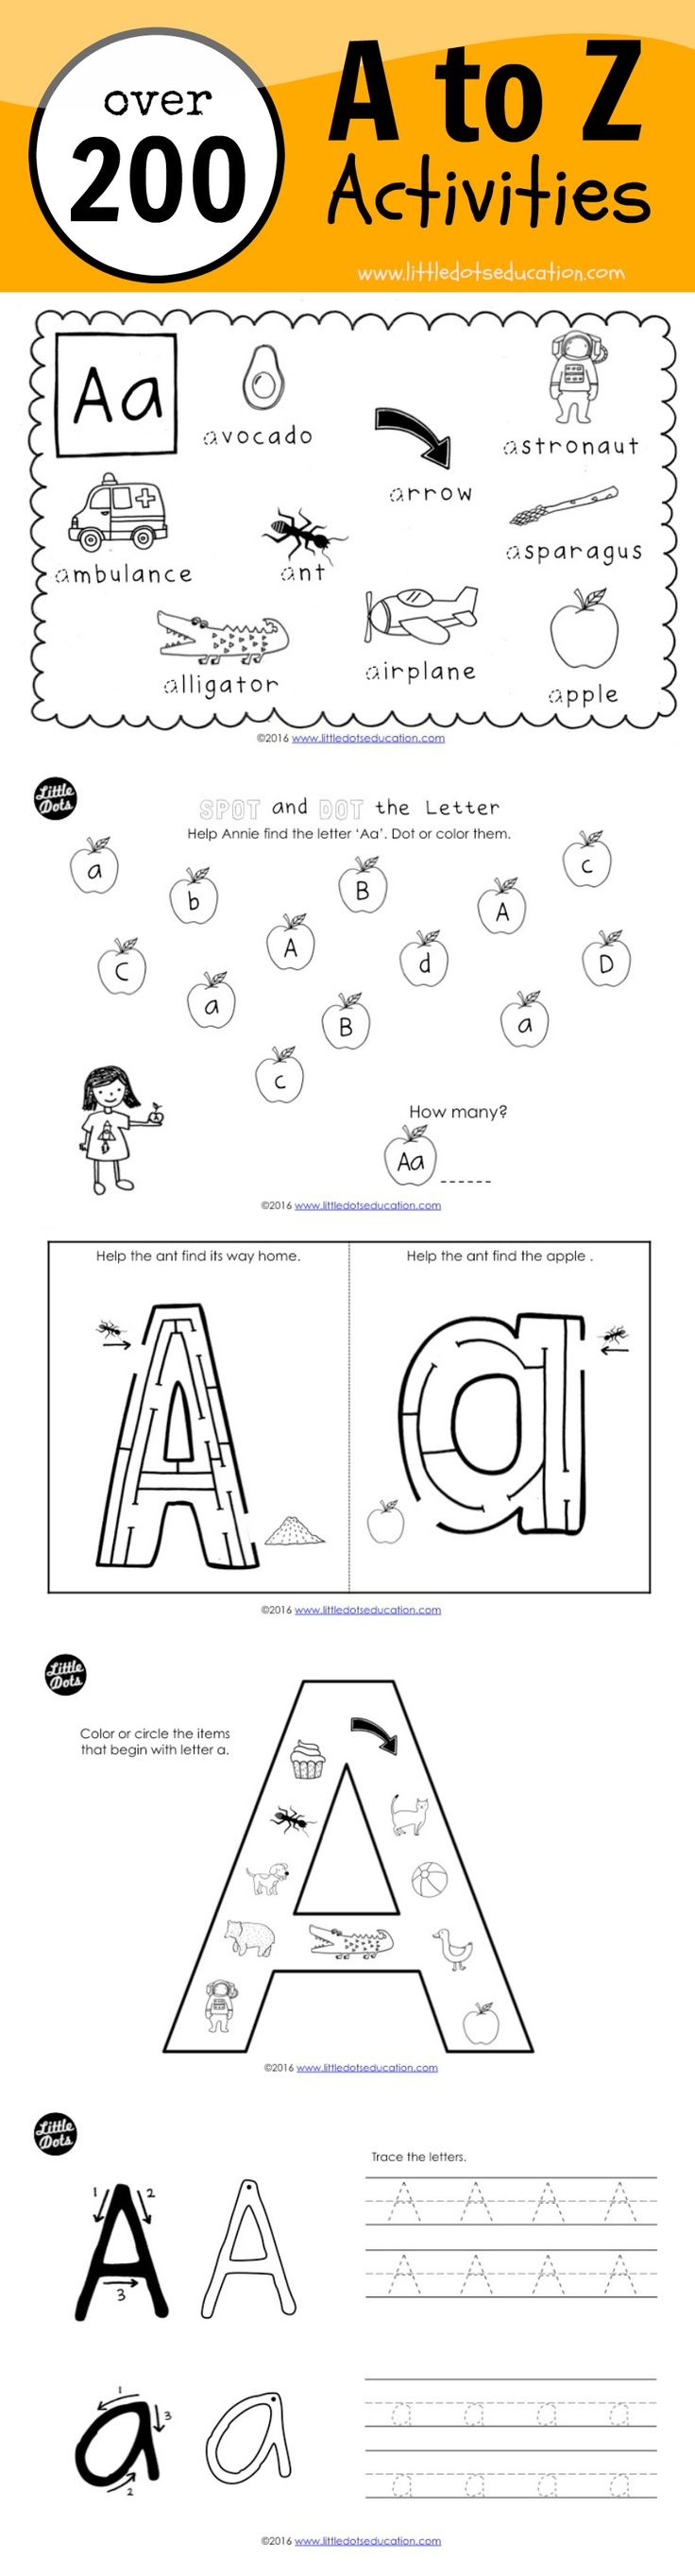 5 Tips To Teach Your Child Using Worksheets - EStudyNotes